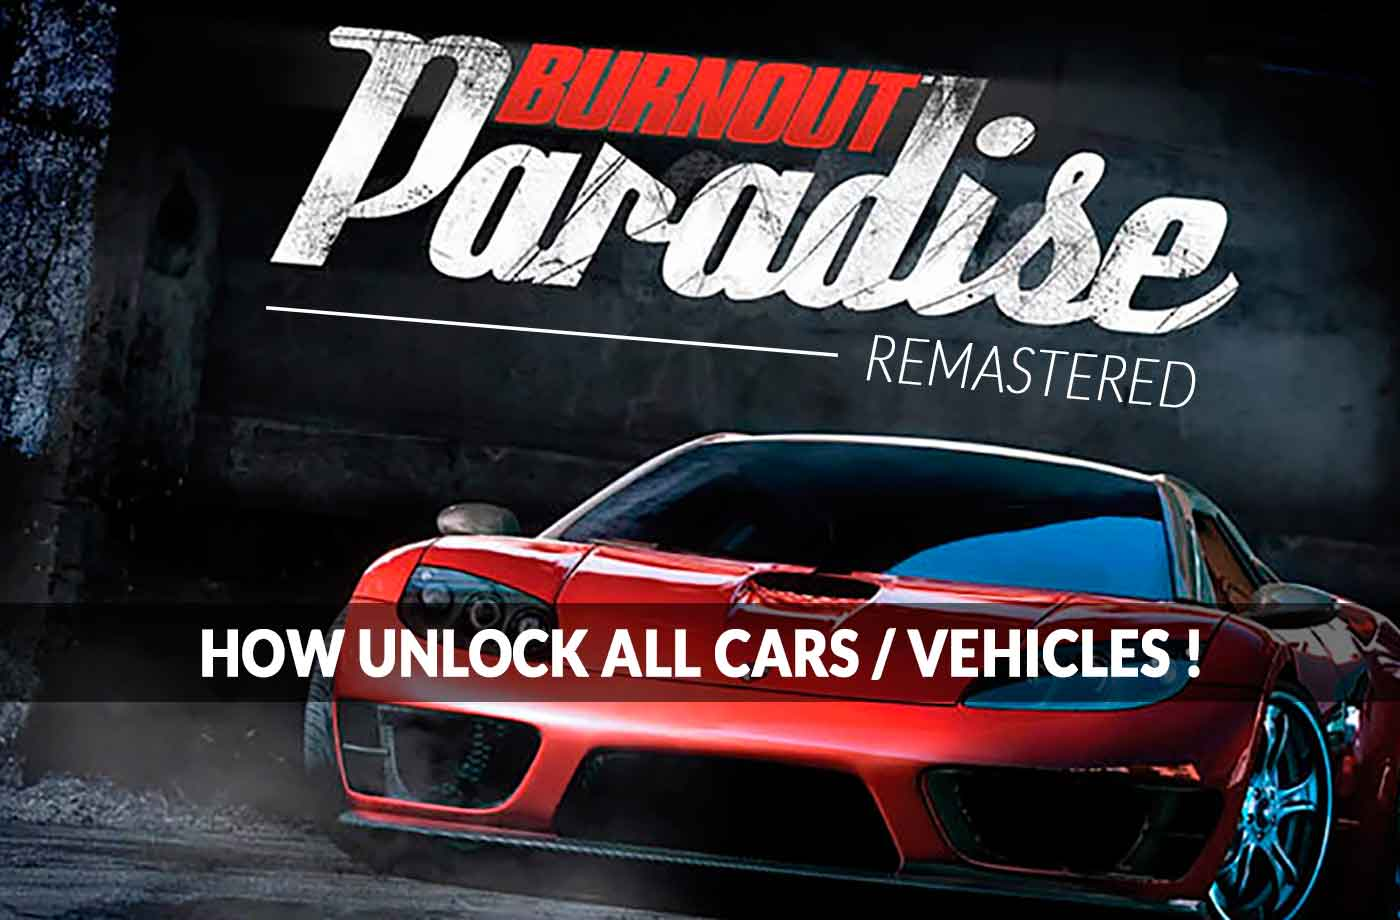 Burnout Paradise Remastered how to unlock all cars / vehicles (the